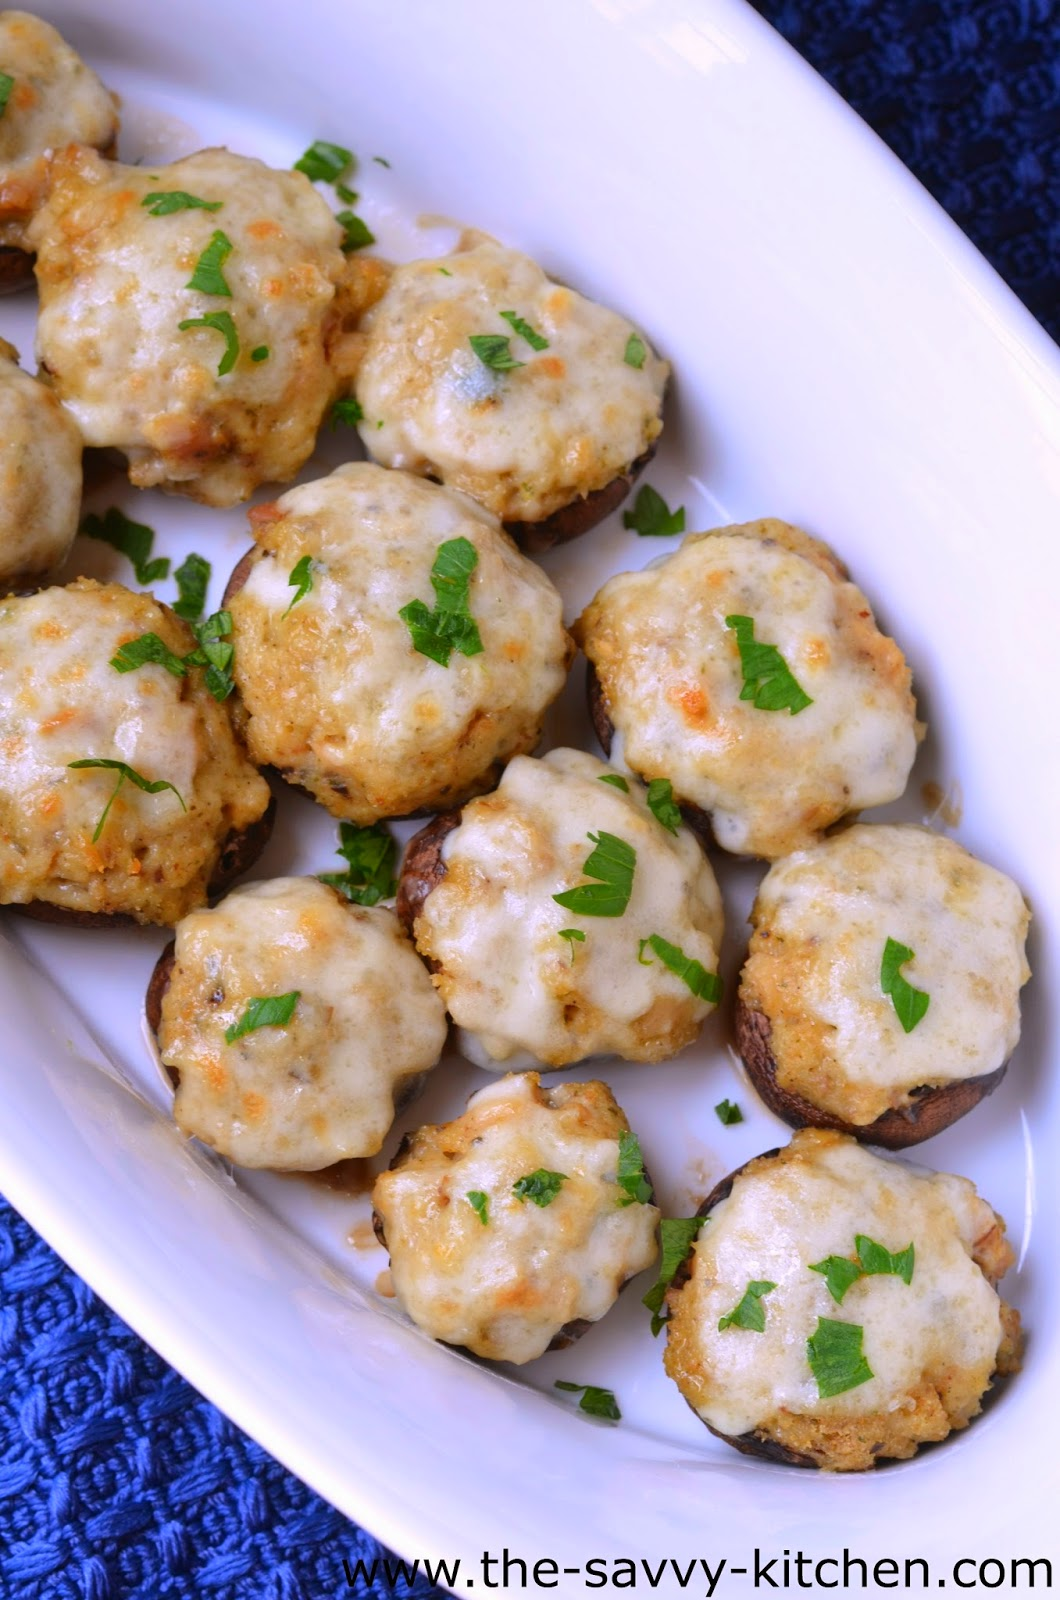 The Savvy Kitchen: Clam and Cheese Stuffed Mushrooms